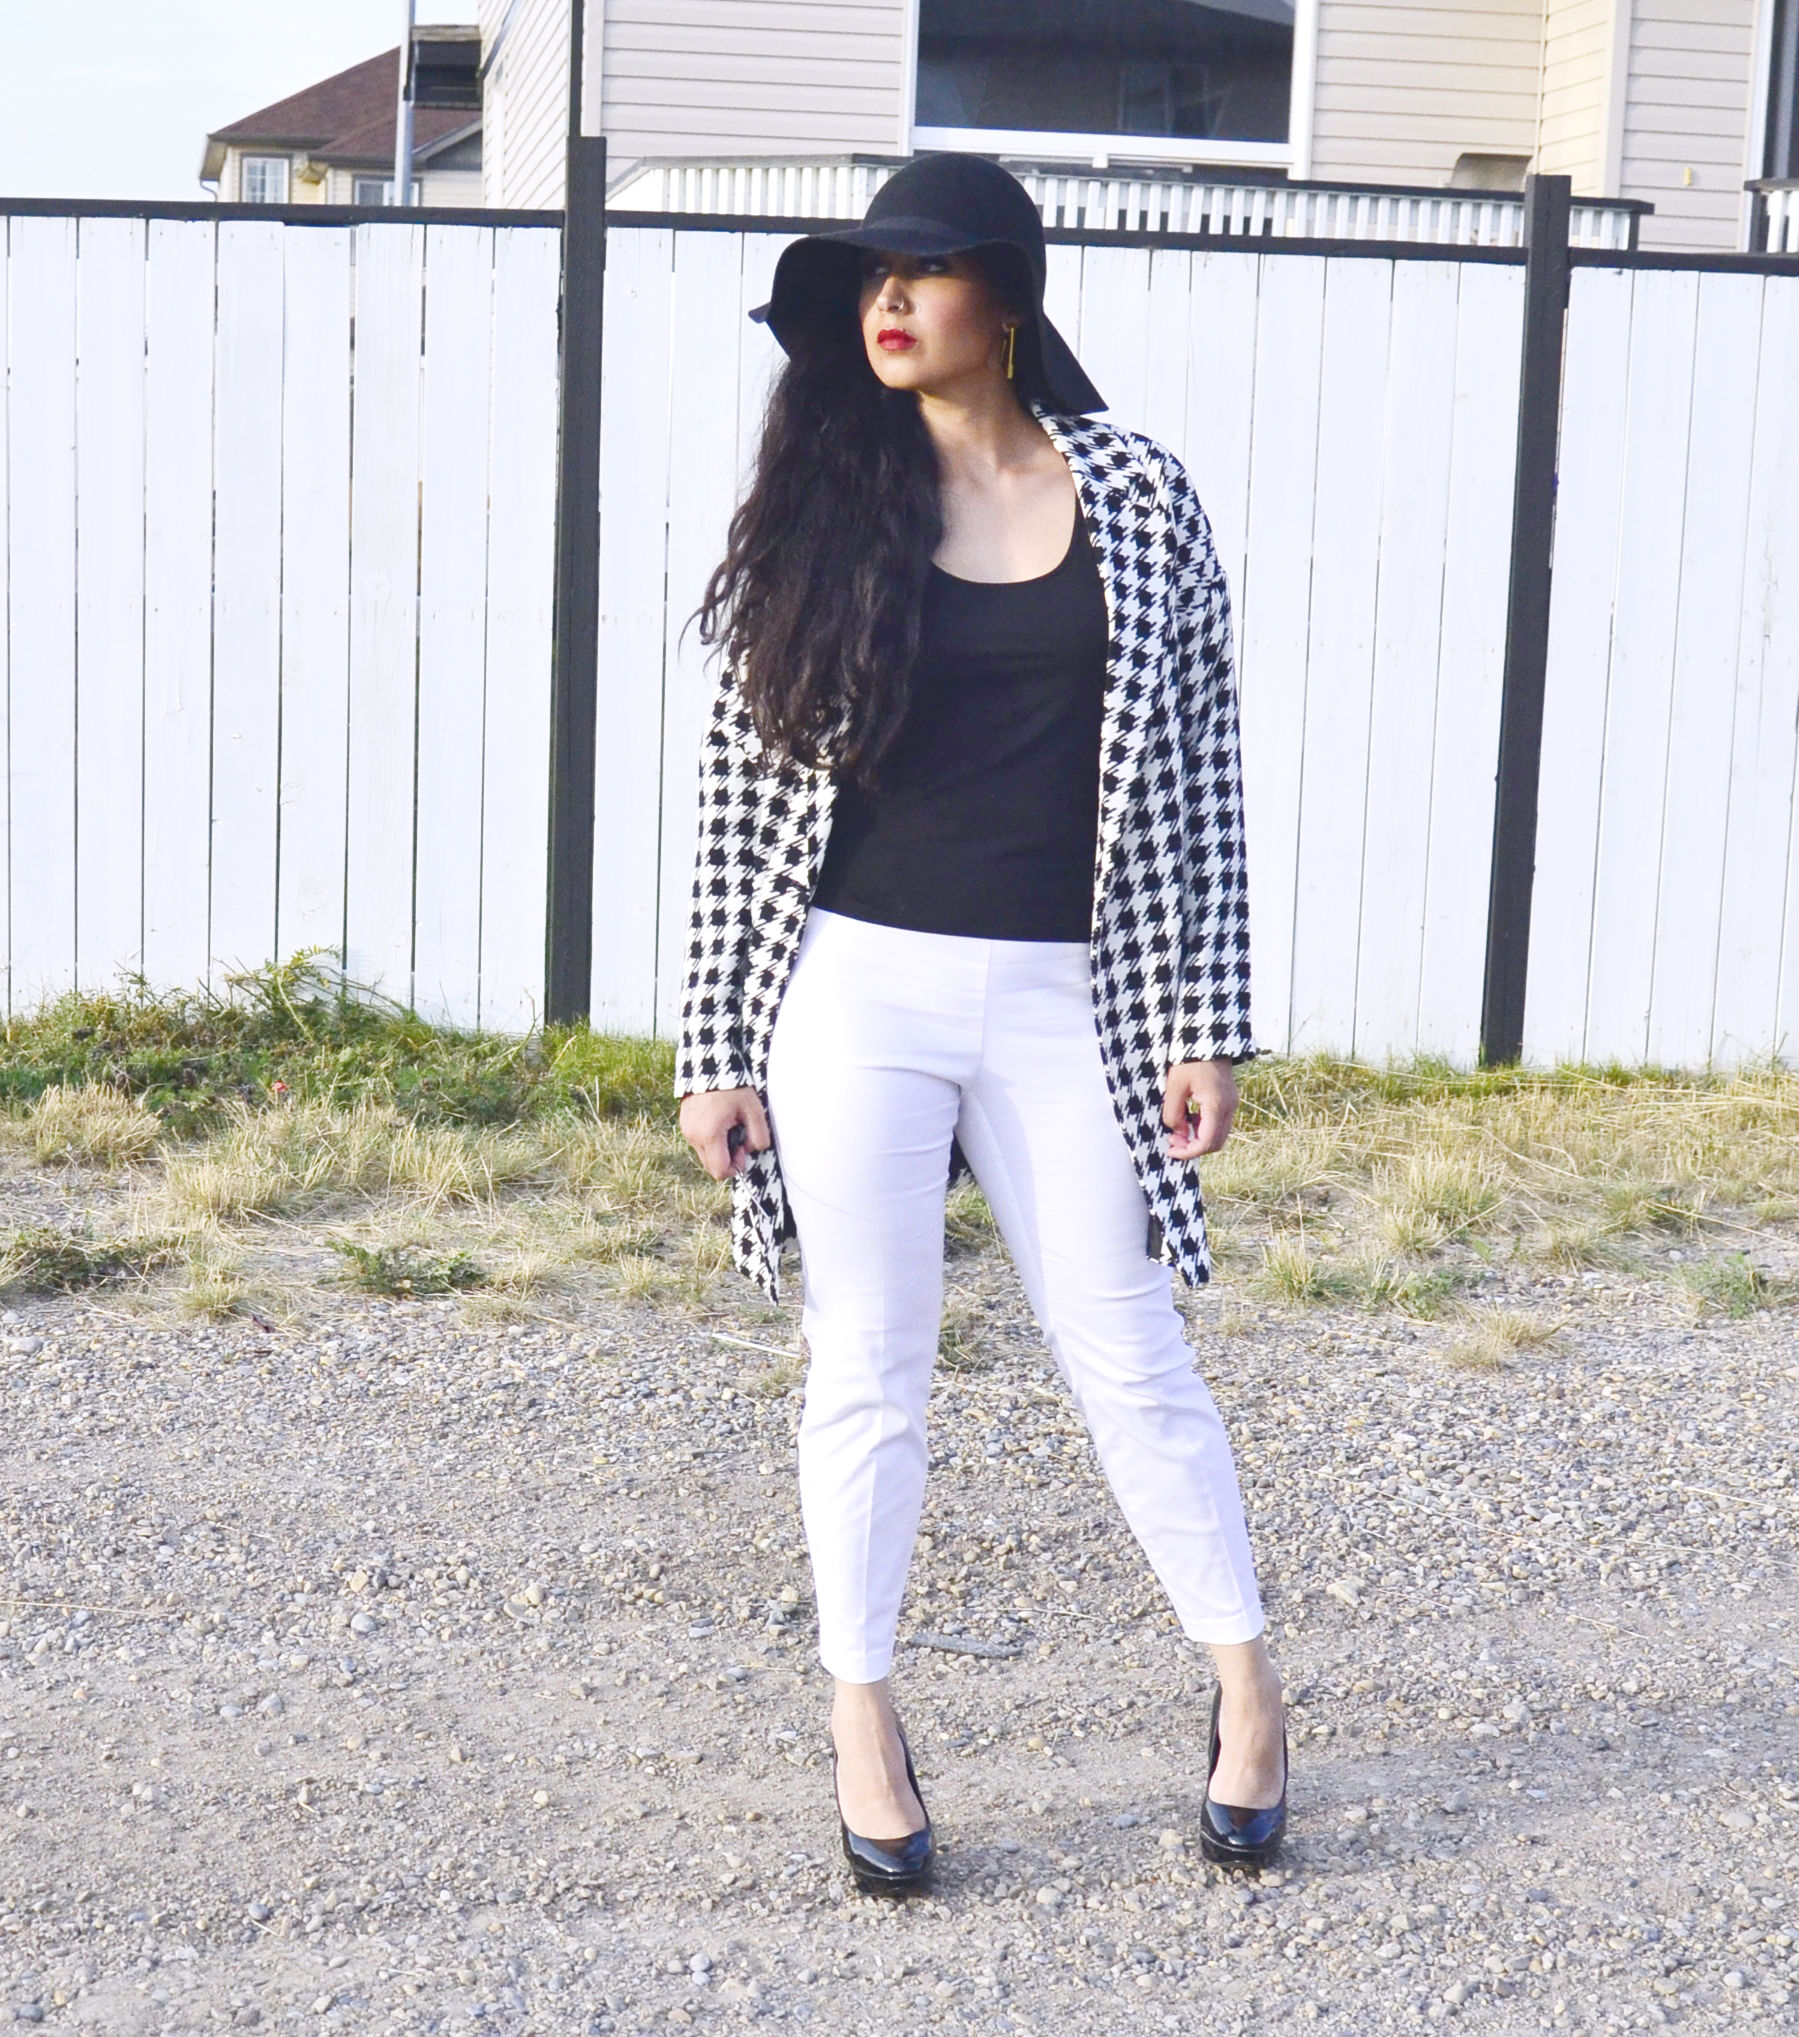 Outfit Two: Who Let The Hounds Out   Houndstooth Coat: Forever21    Black Tank: Smartset    White Cropped Pants: H&M    Black Pumps: Pin Up Girl Clothing    Black Floppy Hat: H&M